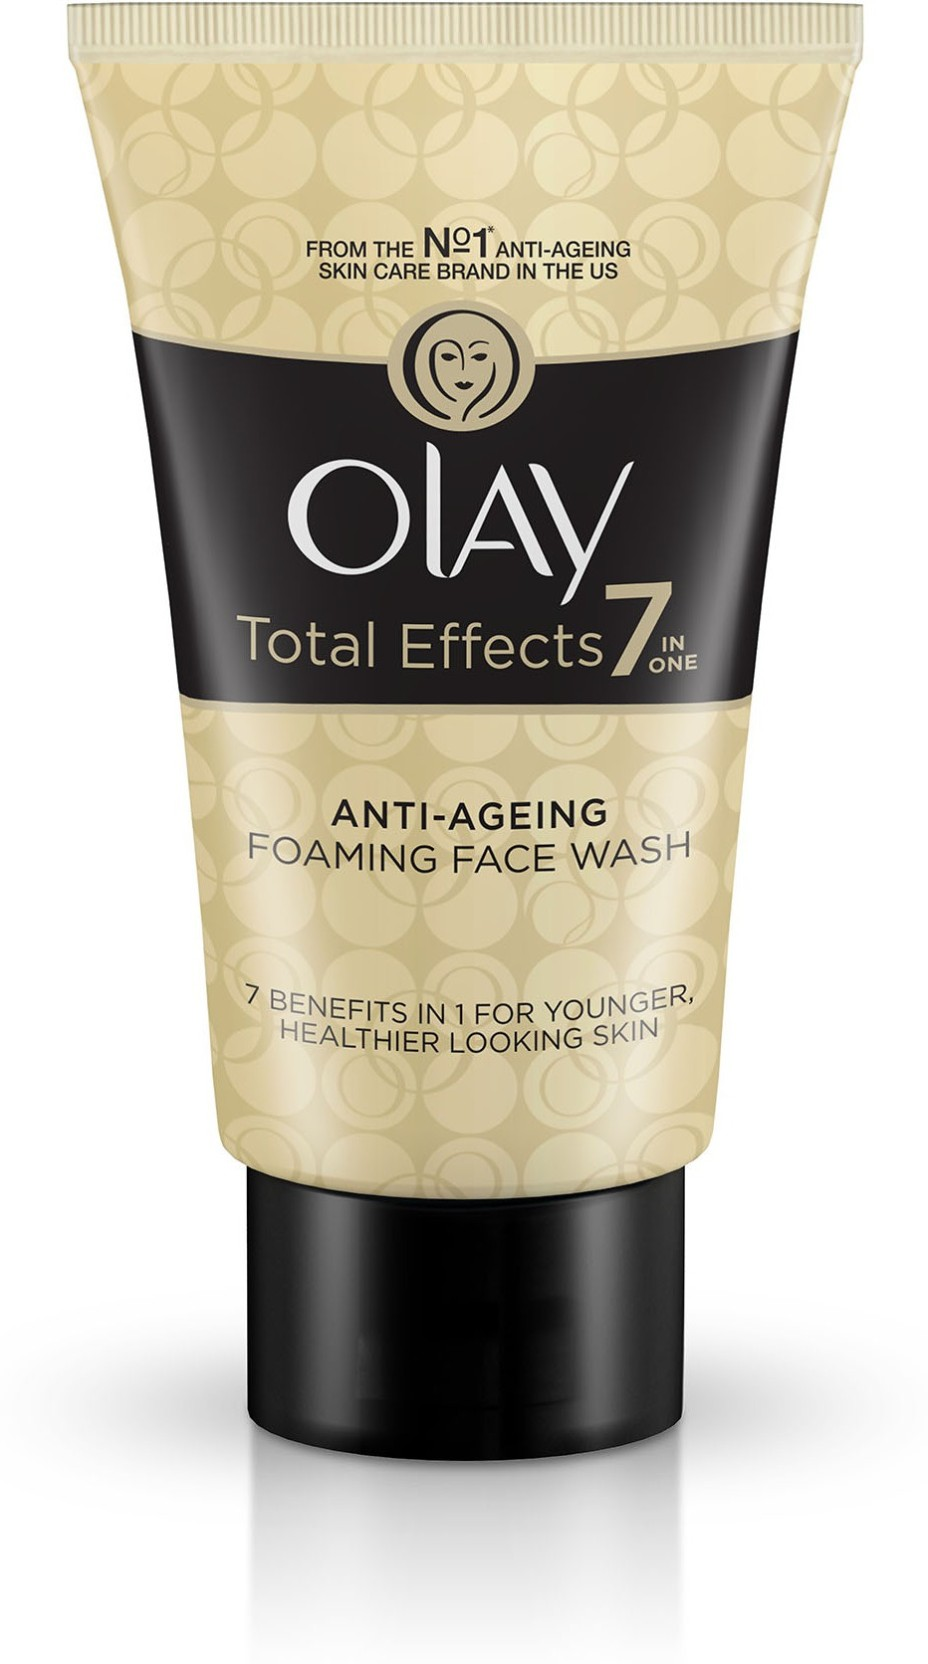 Olay Total Effects 7 In 1 Anti Ageing Foaming Face Wash Price Day Cream Normal Spf 15 8g Home